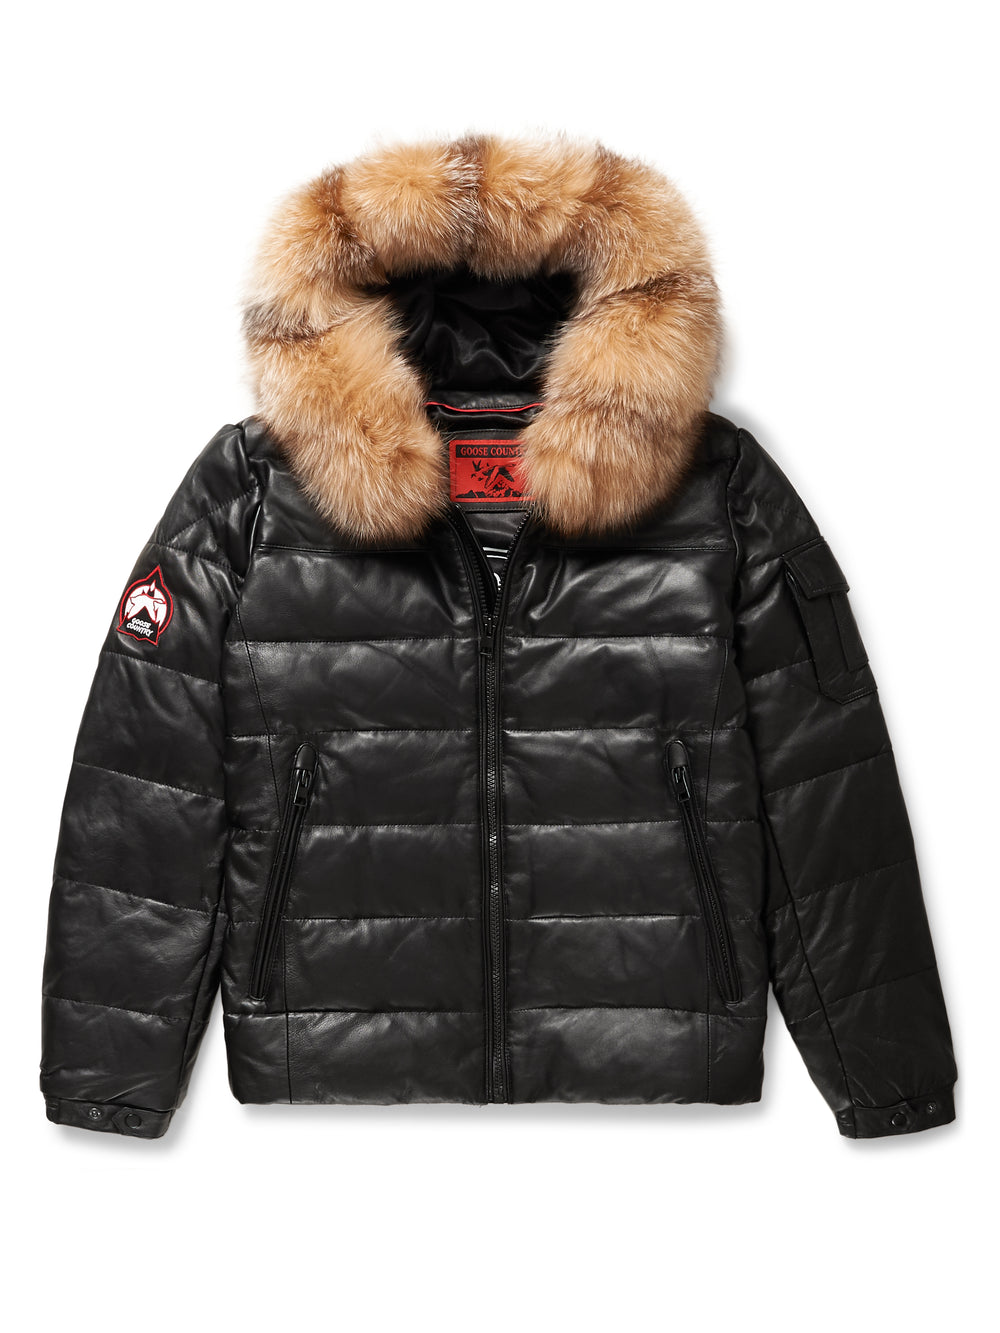 29a7f38dd0d Goose Country Men's Bubble Jacket: Black Leather – GOOSE COUNTRY